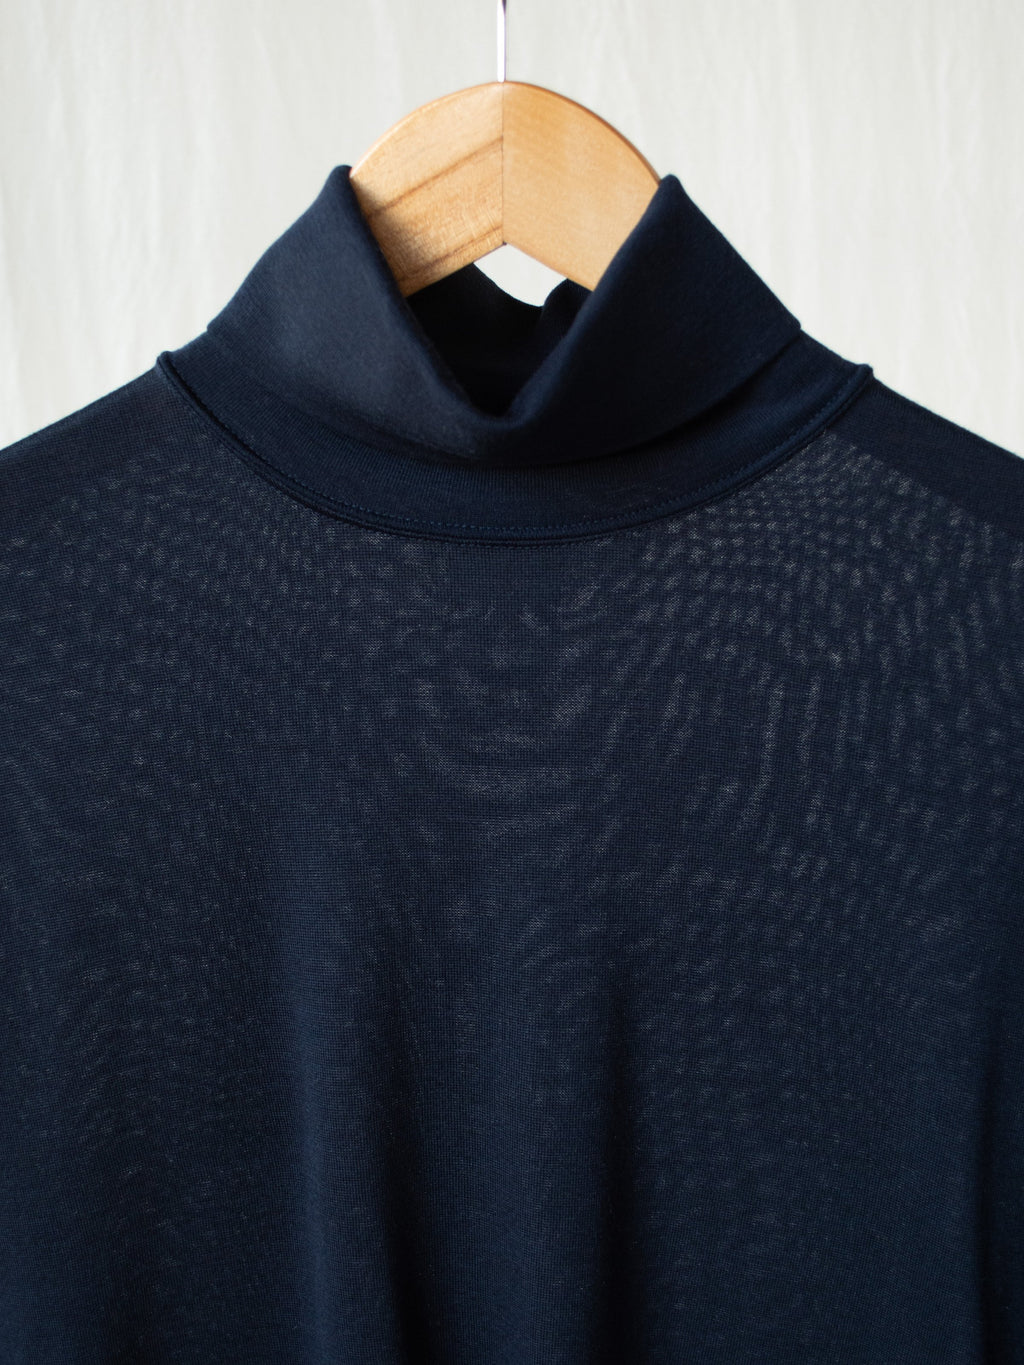 Namu Shop - Phlannel Wool Turtleneck T-Shirt - Navy